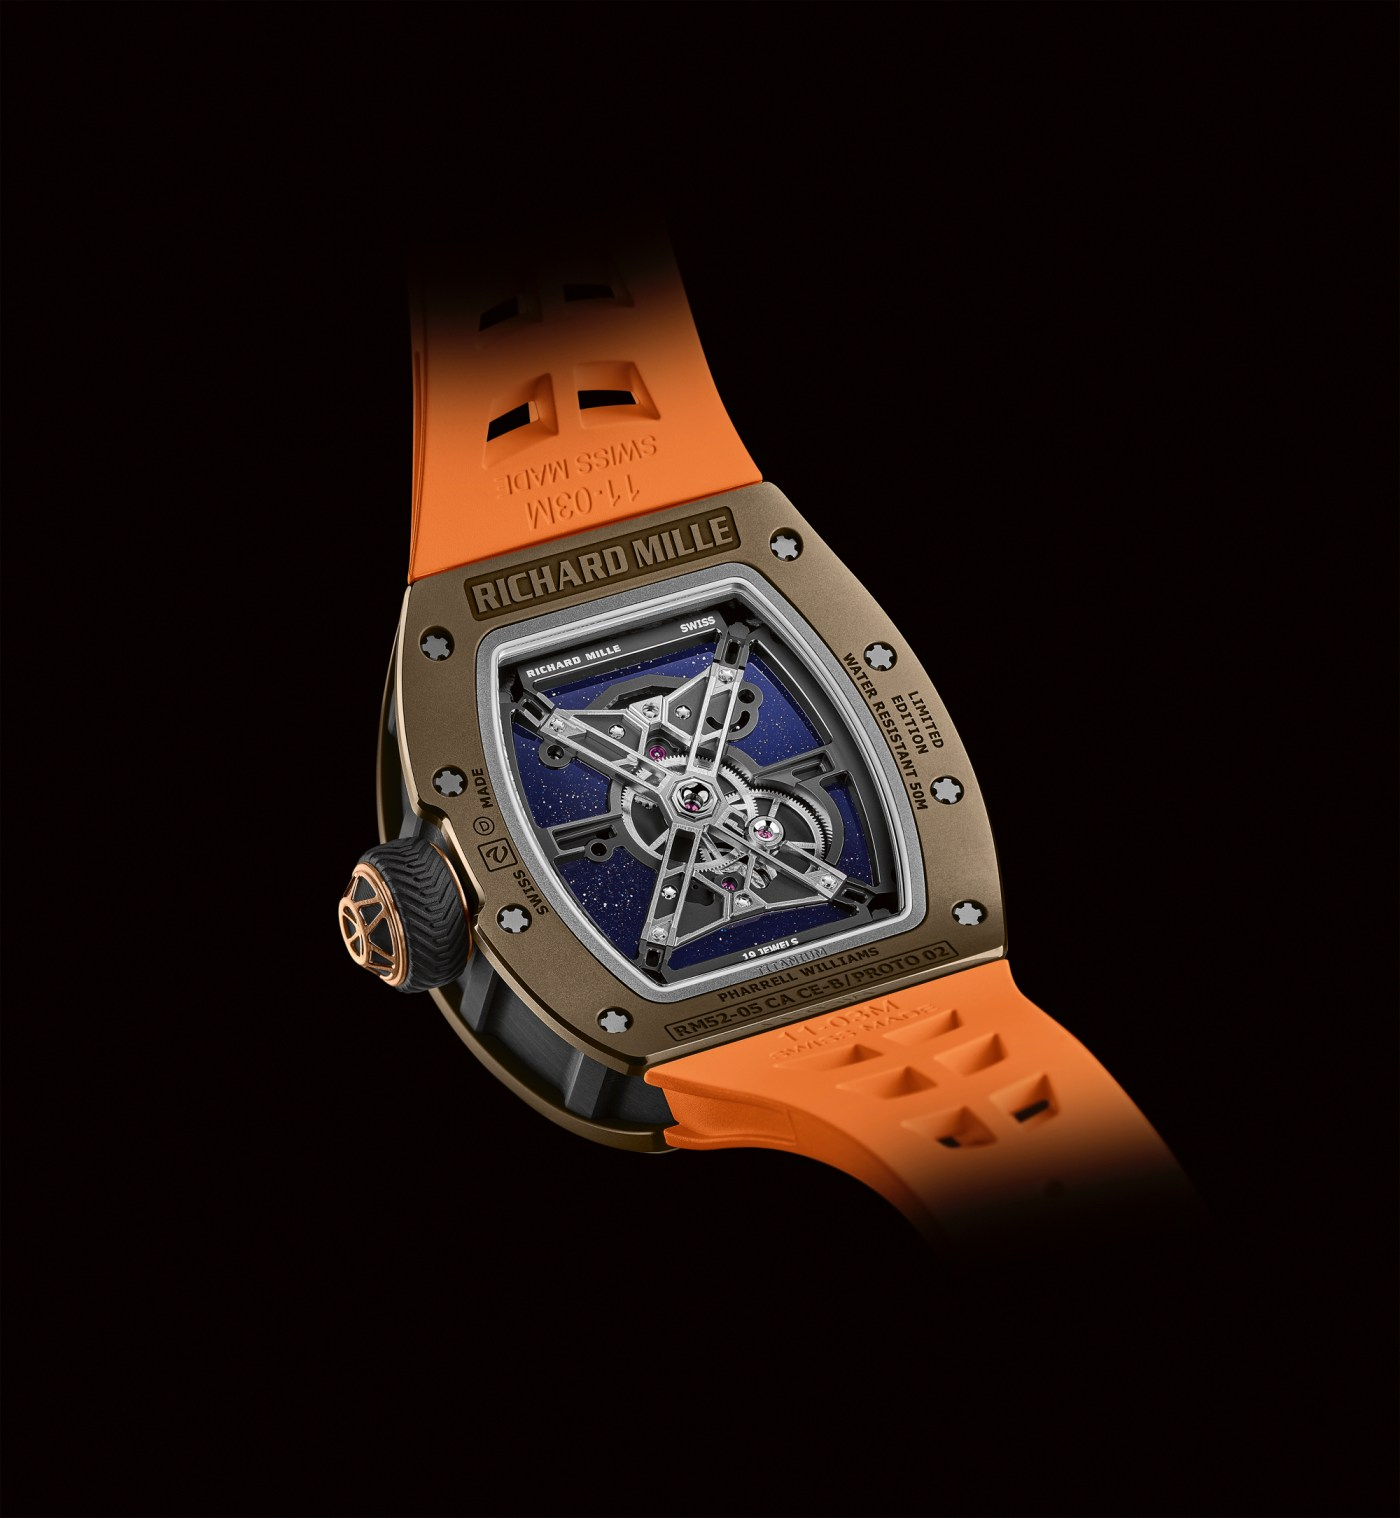 Richard Mille x Pharrell Williams RM 52-05 caseback